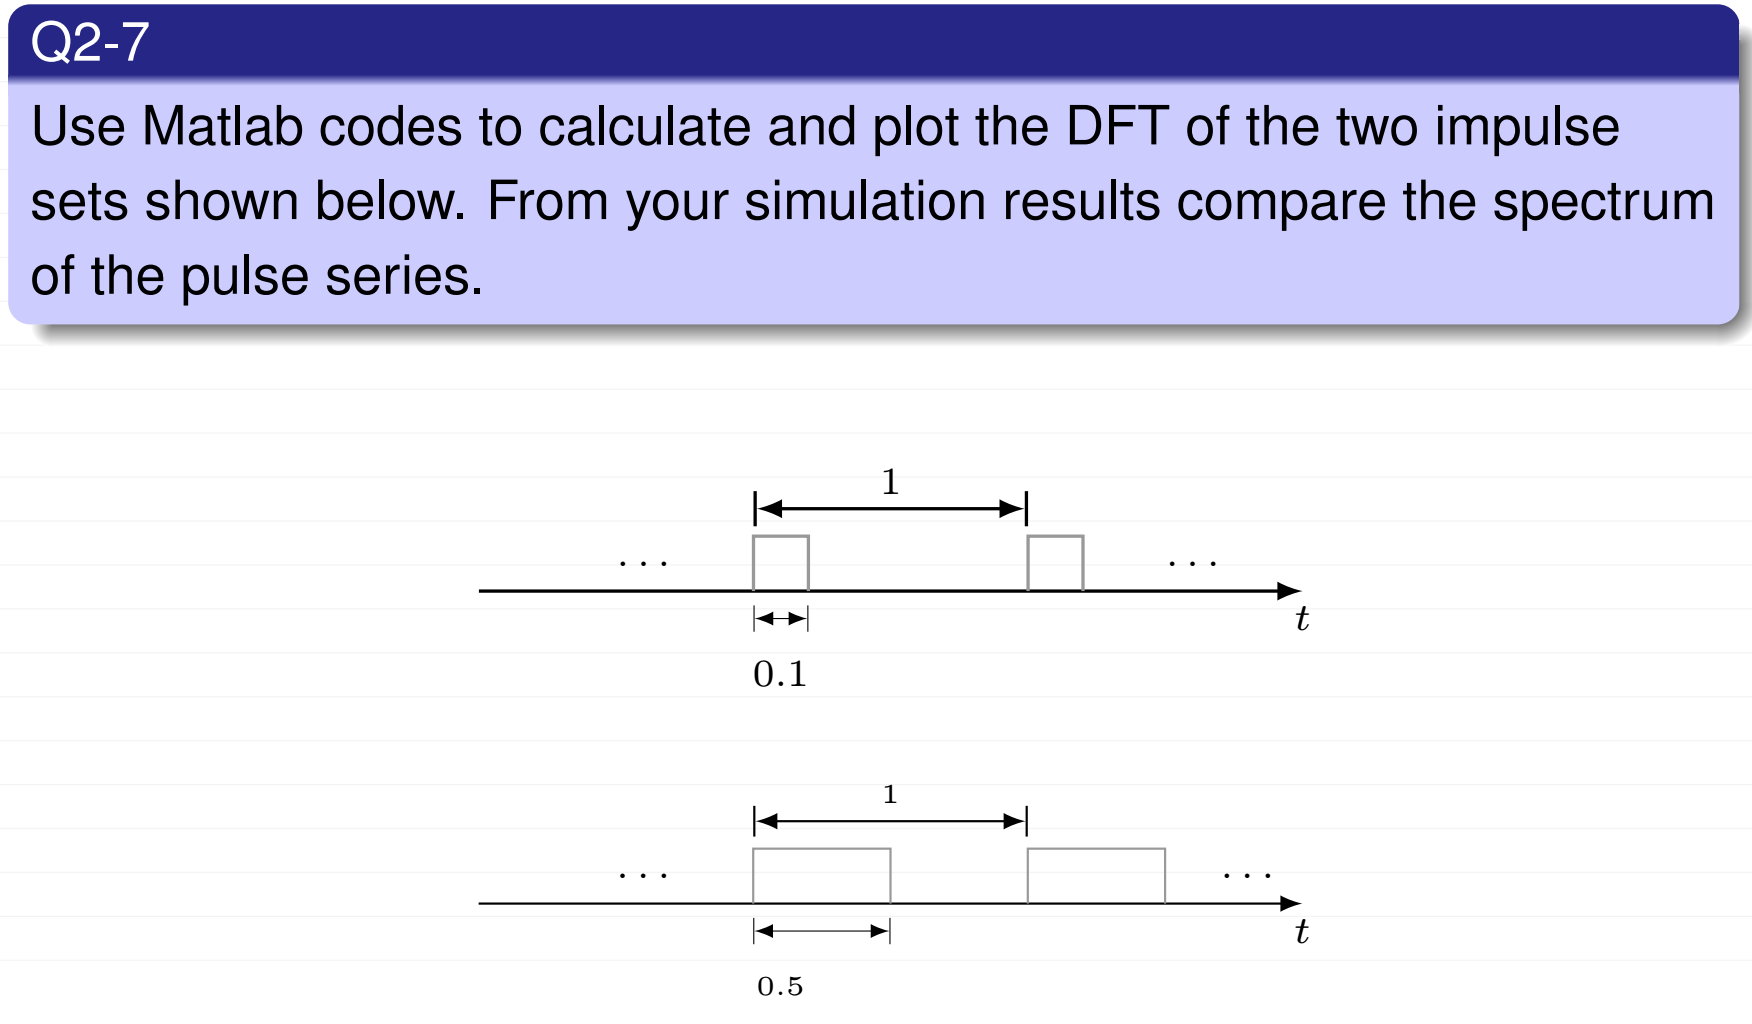 Solved: Use Matlab Codes To Calculate And Plot The DFT Of